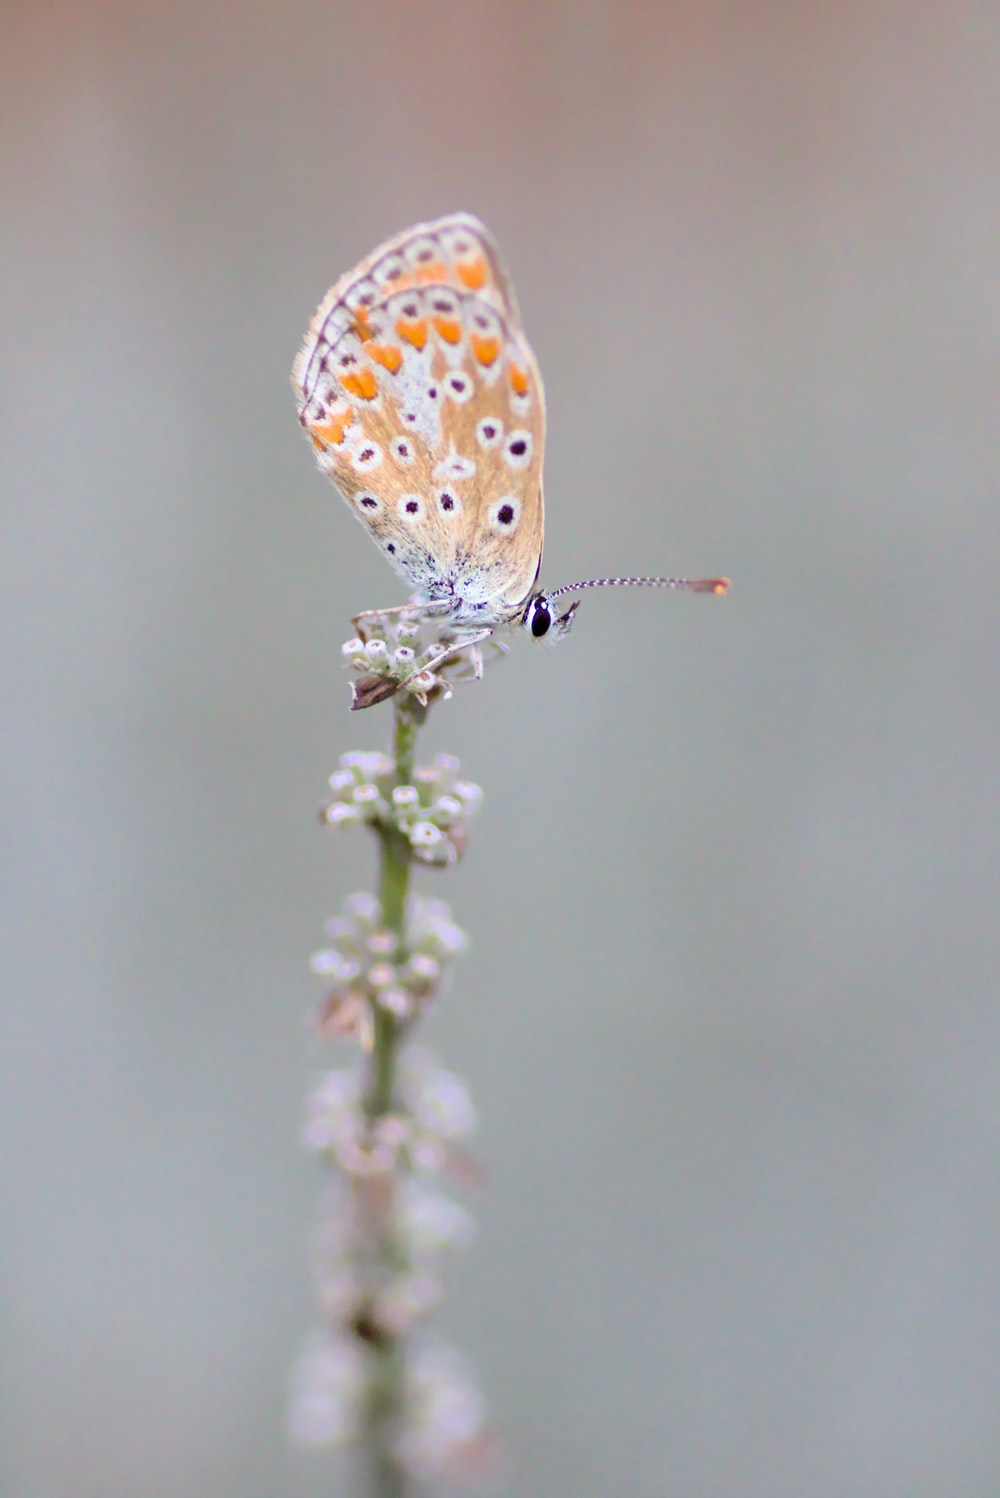 brown and white butterfly perched on white flower in close up photography during daytime